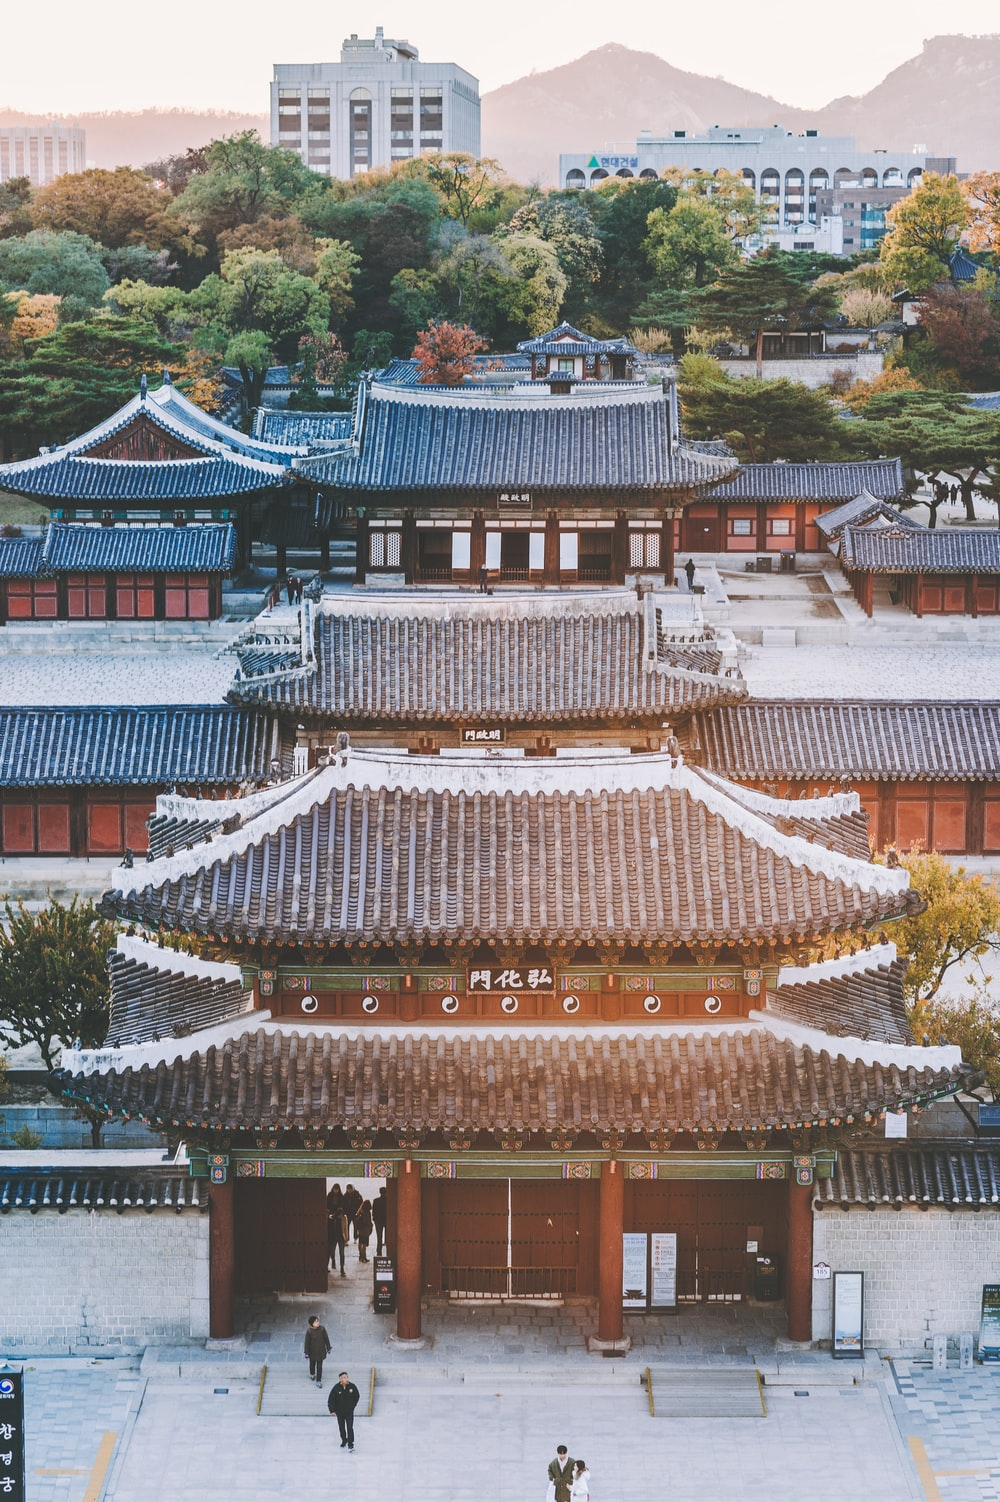 Korean Pictures [HQ] | Download Free Images & Stock Photos on Unsplash